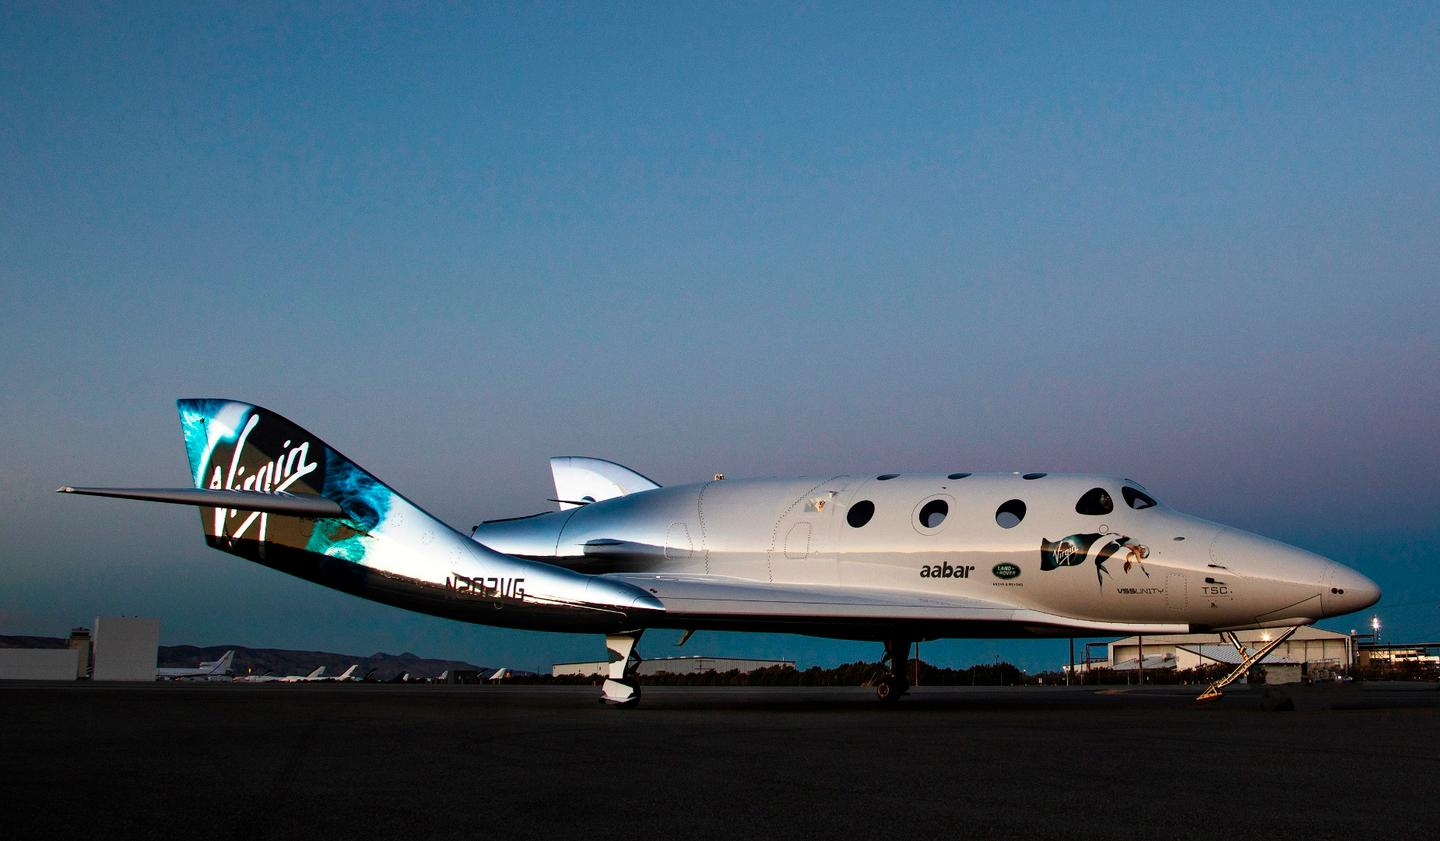 Virgin Galactic's VSS Unity may one day take tourists to space, but the company also hopes to leverage its aviation tech for high-speed travel at lower altitudes